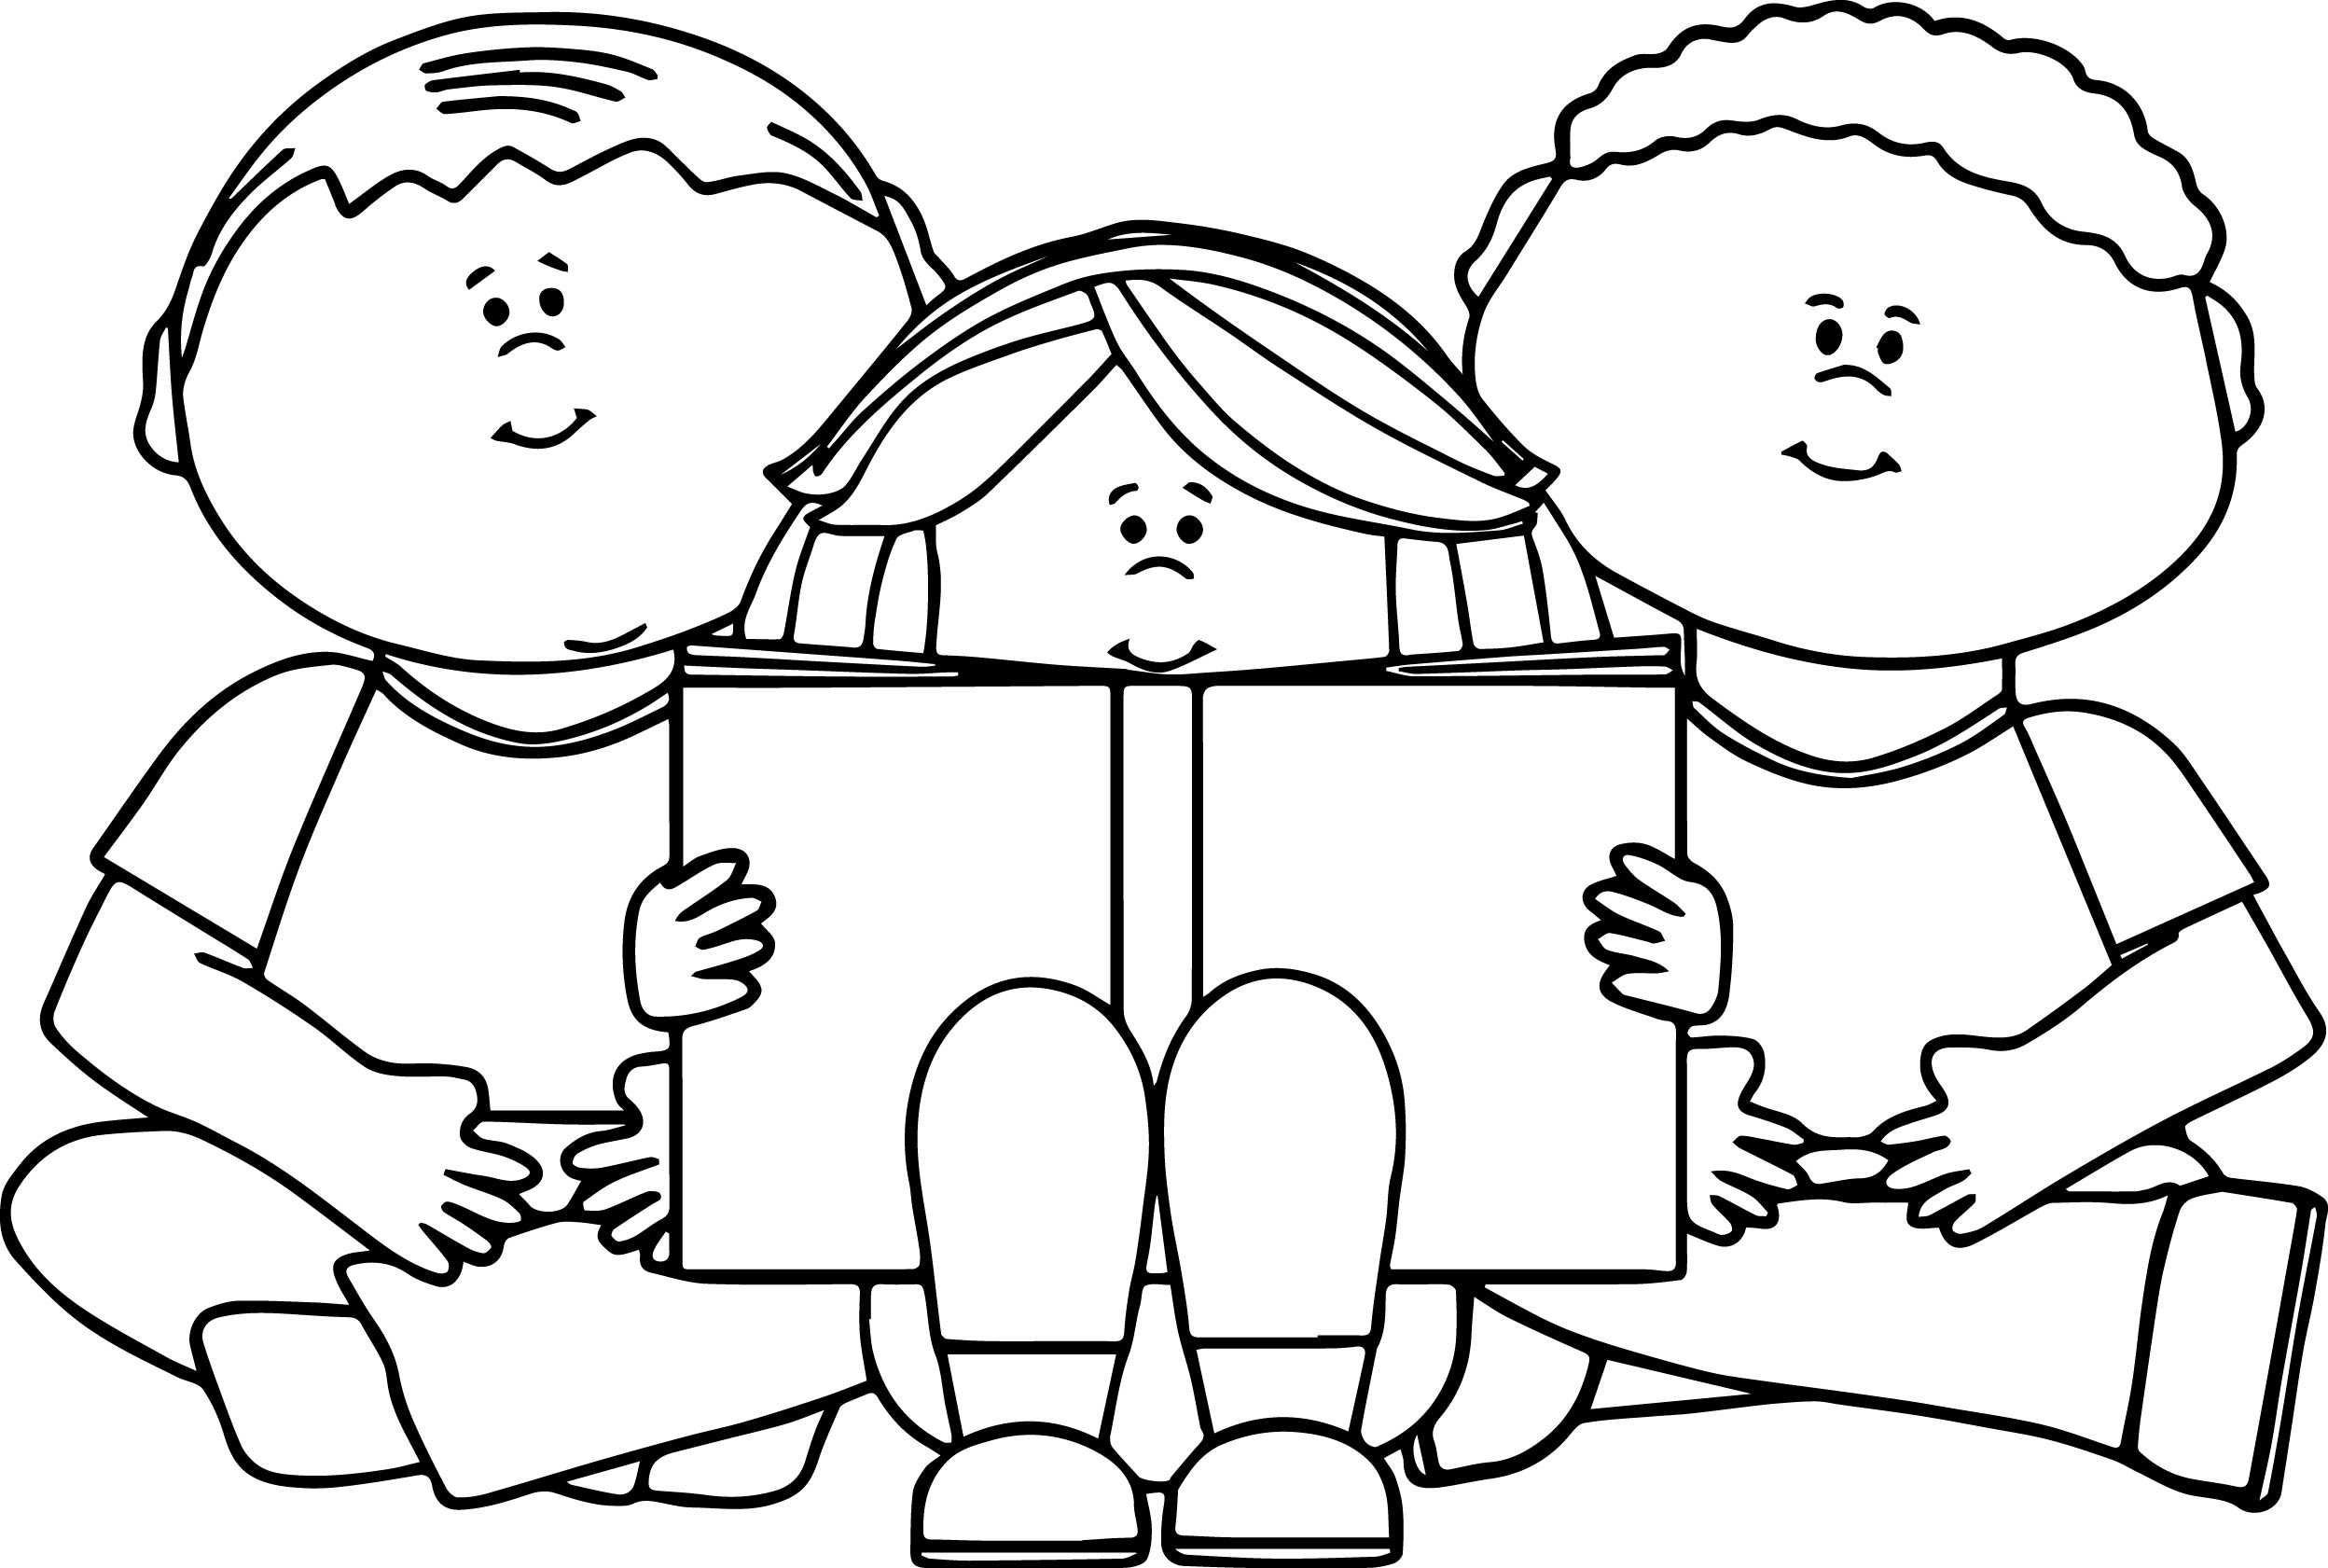 girl reading coloring page girl reading book coloring page stock vector izakowski page reading girl coloring